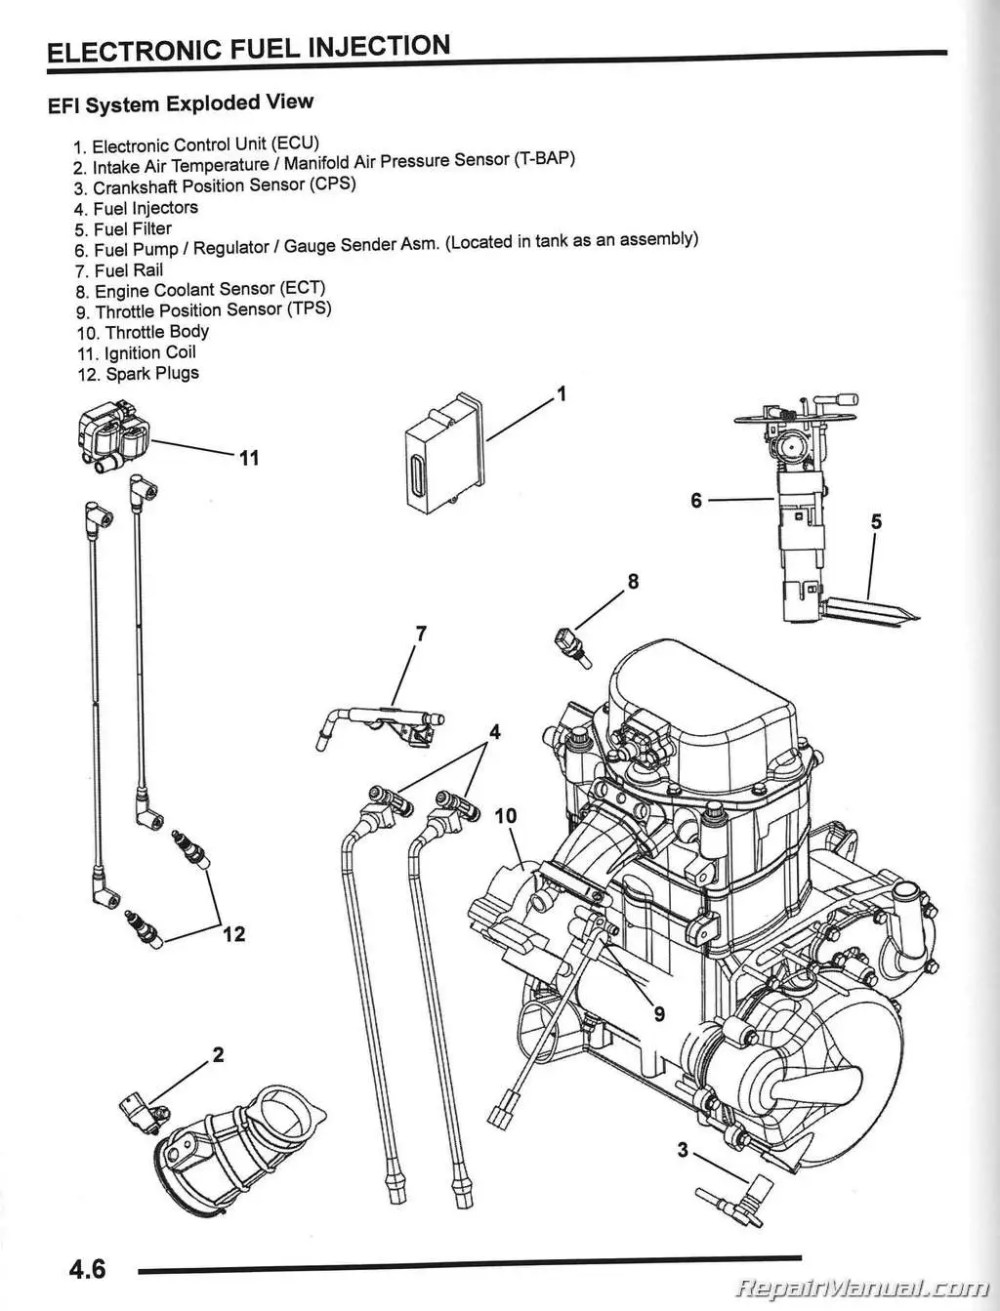 medium resolution of 2008 polaris ranger rzr 800 side by side service manual rh repairmanual com polaris rzr 800 ignition wiring diagram polaris rzr 900 wiring diagram